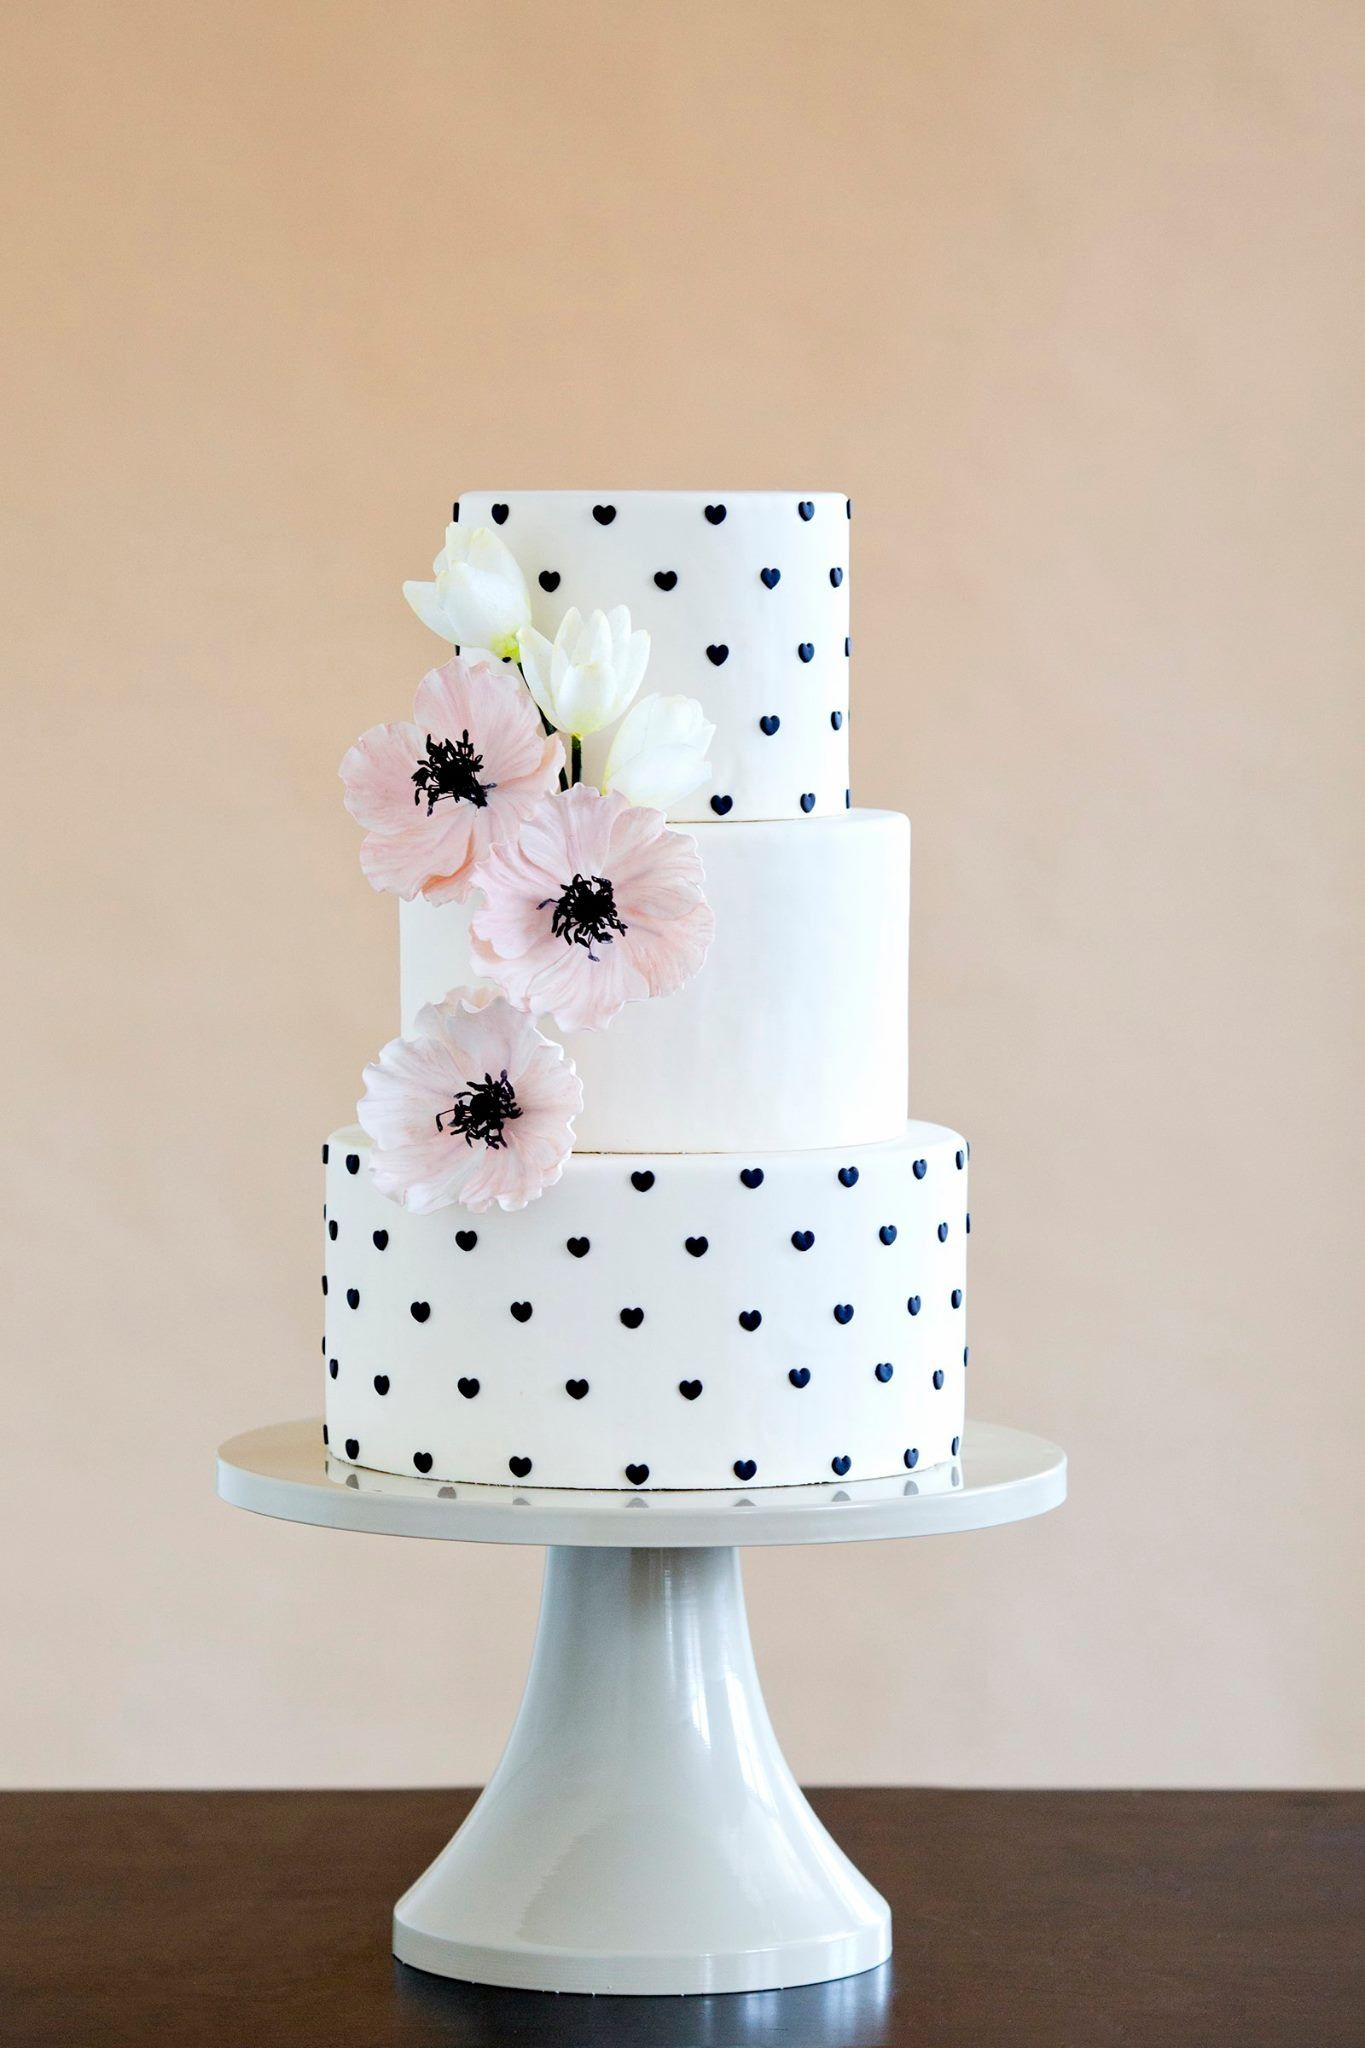 tiny black hearts white cake Pink flowers | Cake Design - Wedding ...